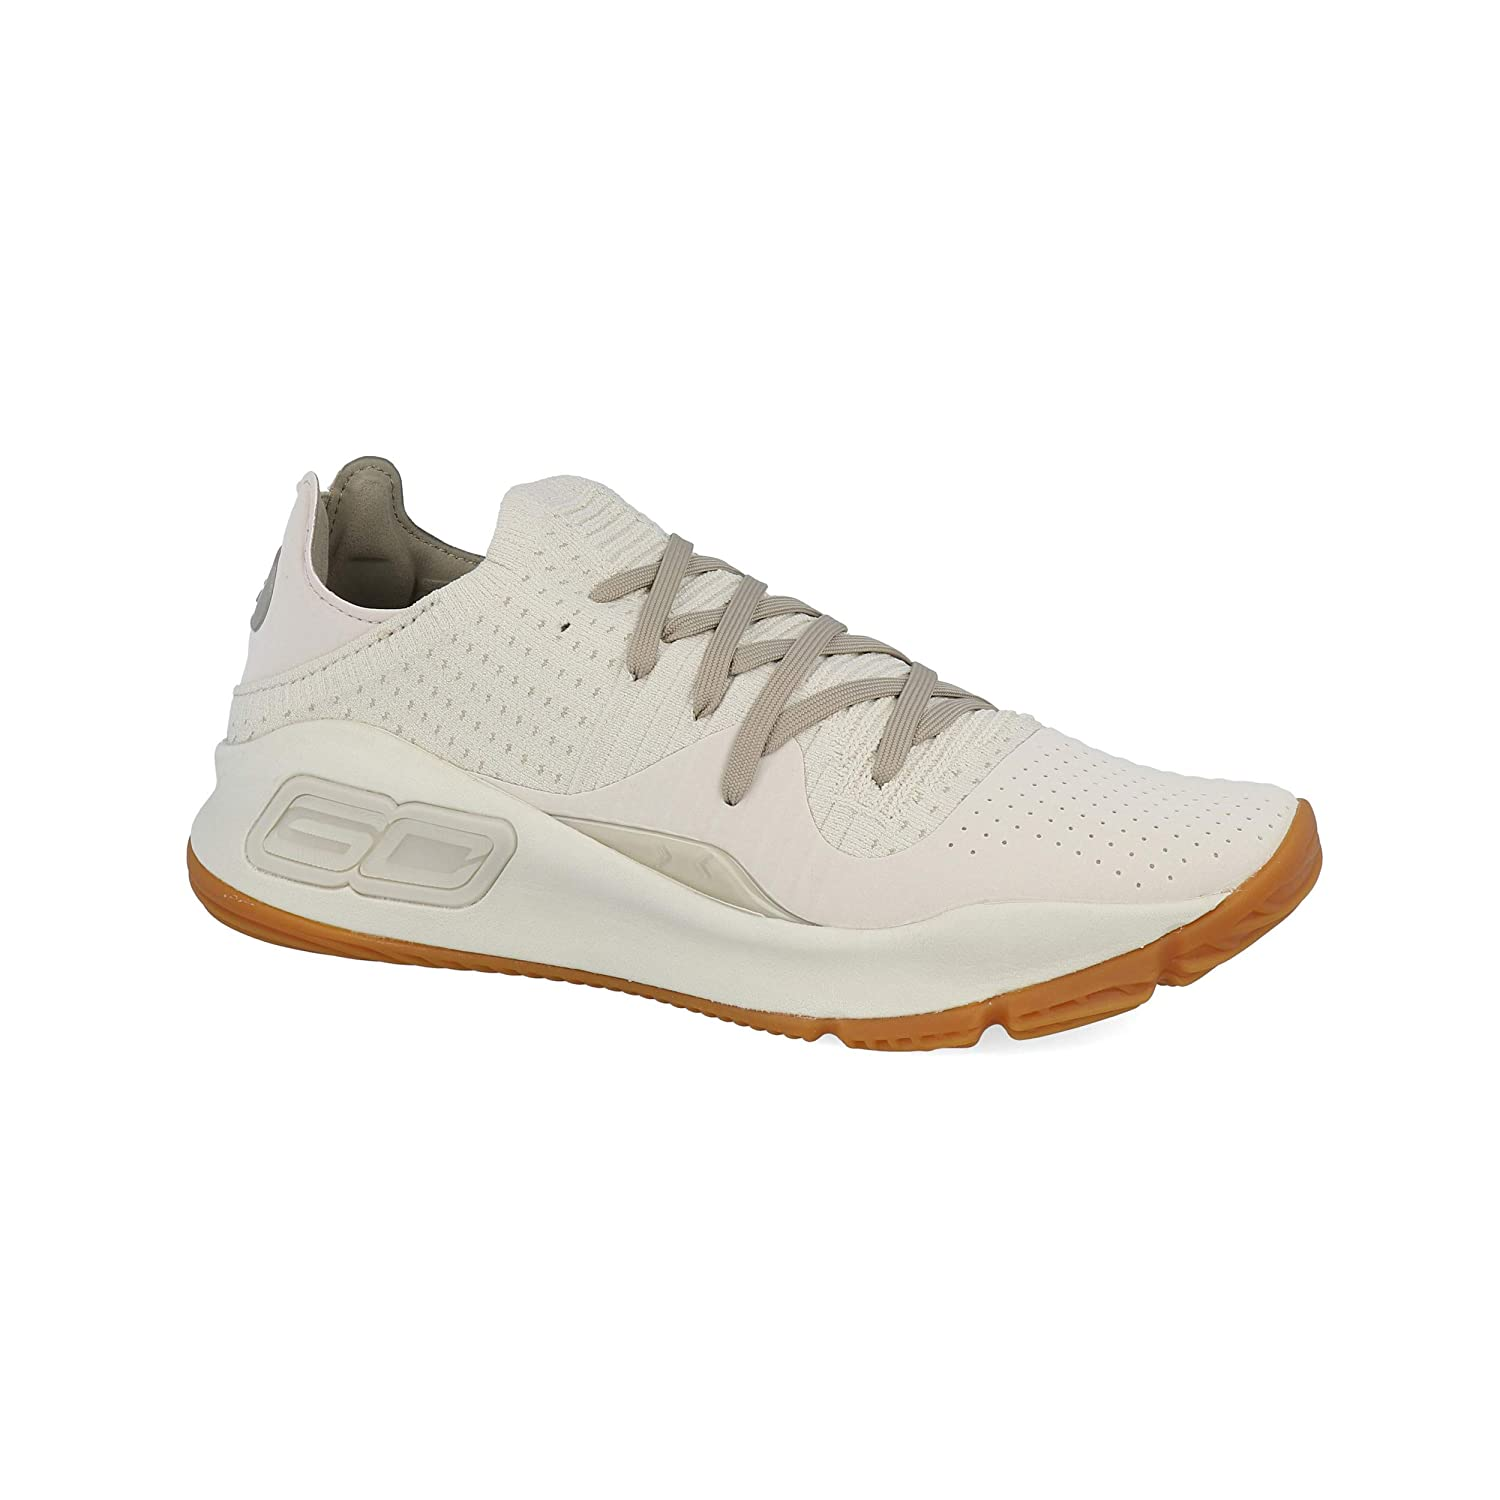 Chaussure de Basketball Tige Basse Curry 4 Low Grove Green Vert pour Homme Under Armour